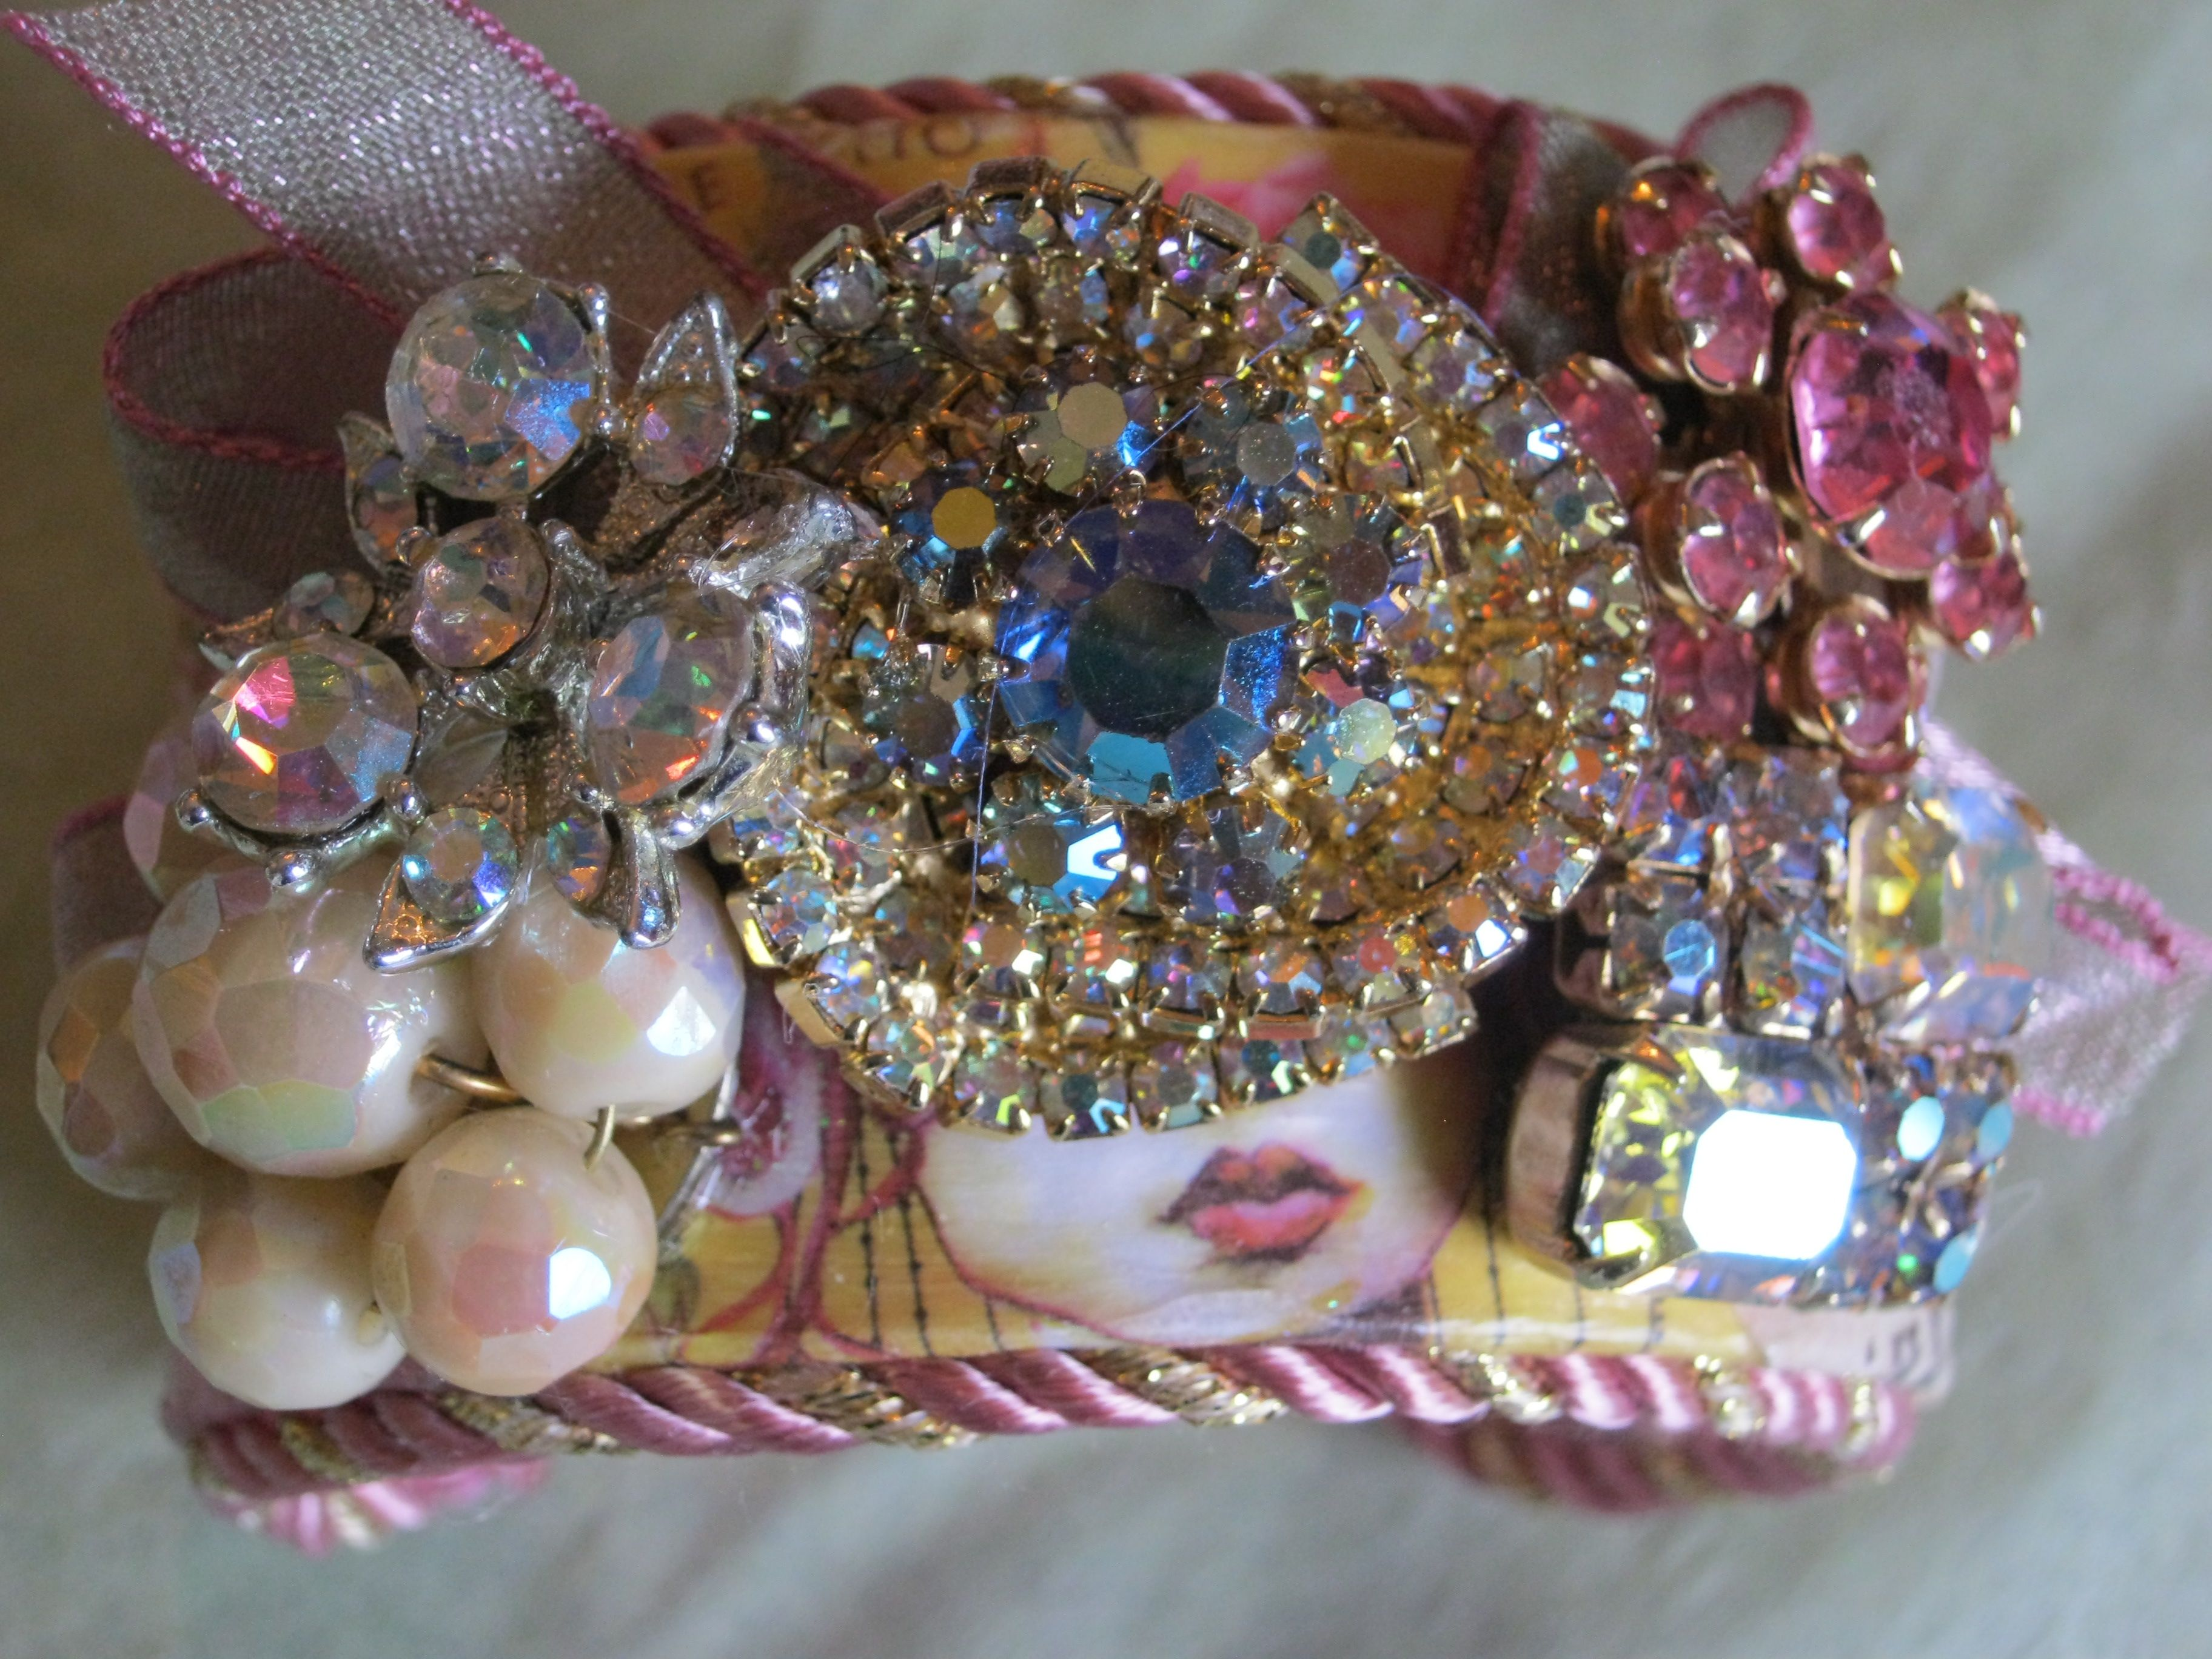 Vintage cuff created with old earrings, pins, etc.  each is one-of-a-kind